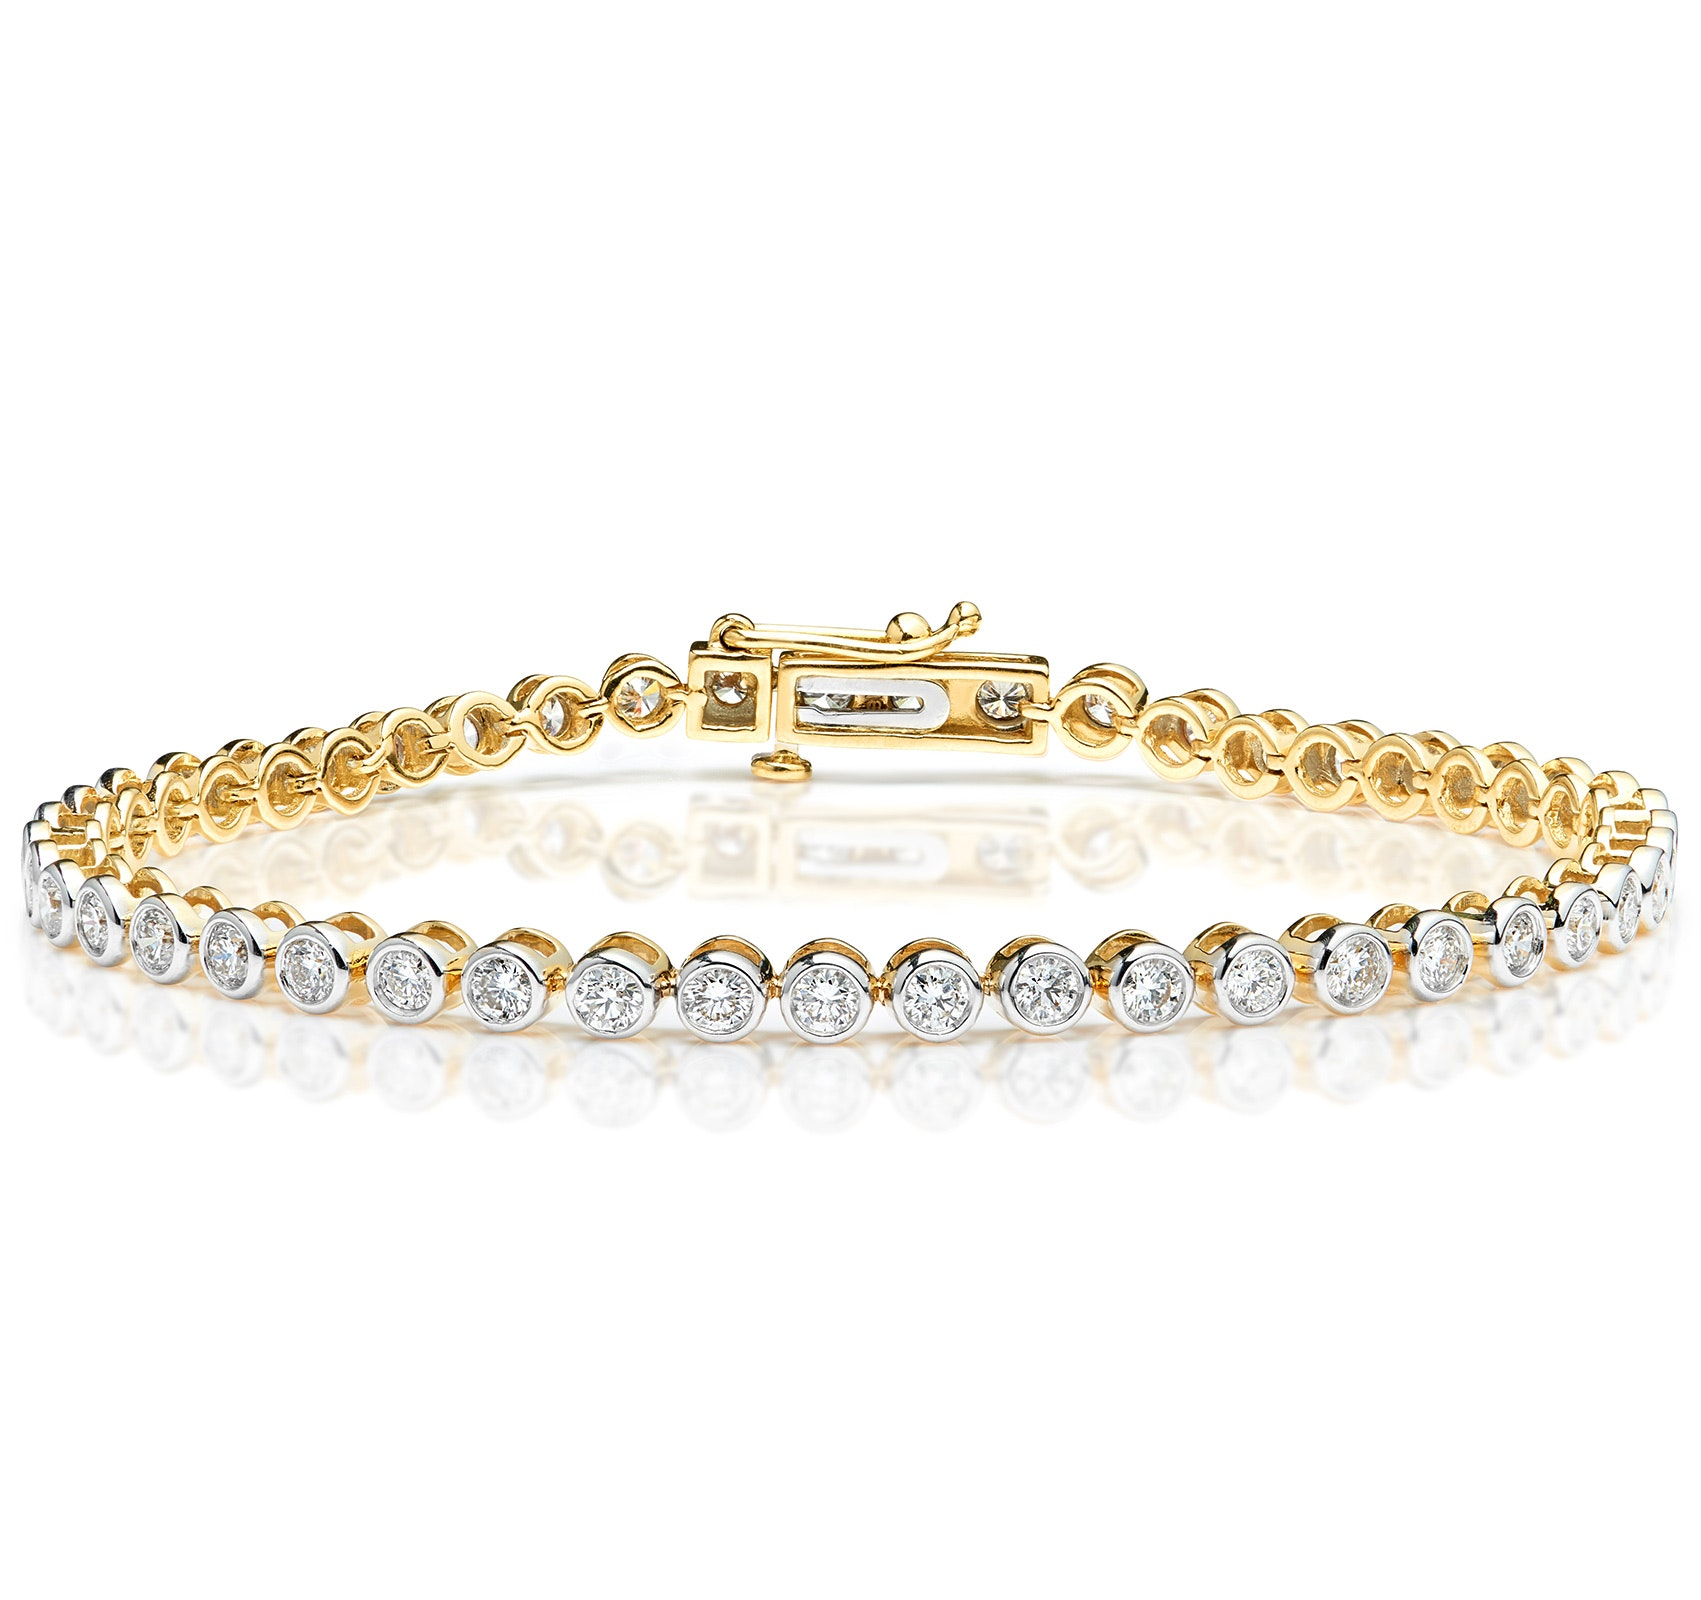 Diamond Tennis Bracelet Rubover Set 3.00ct H/Si in 18K Gold